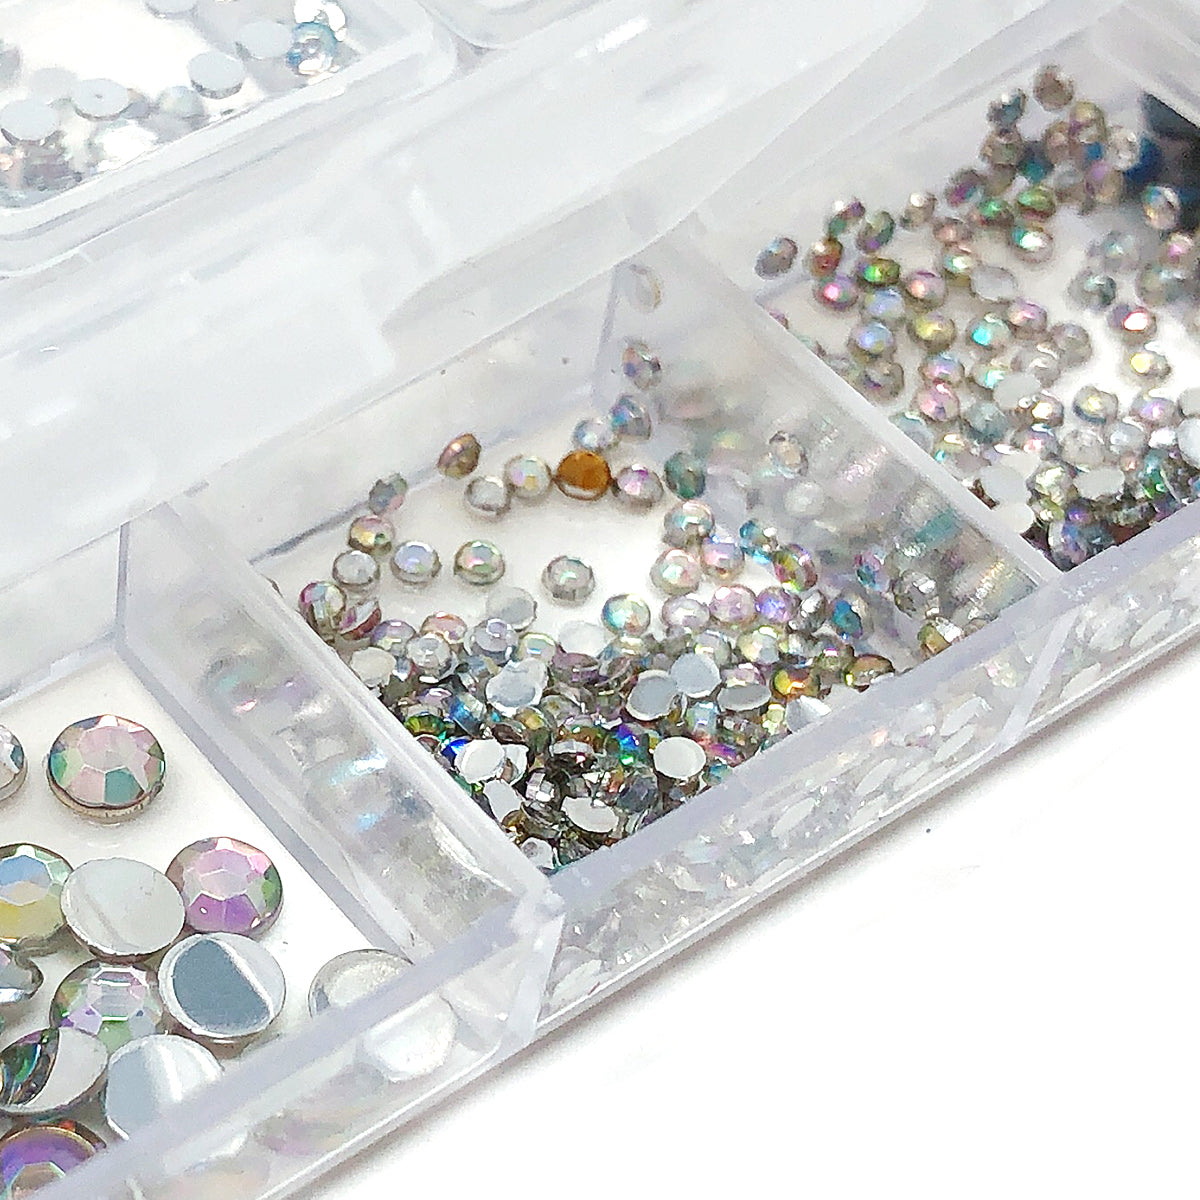 Wrapables Dazzling Nail Art Rhinestones Nail Manicure with Plastic Case, Ivory & Aquamarine